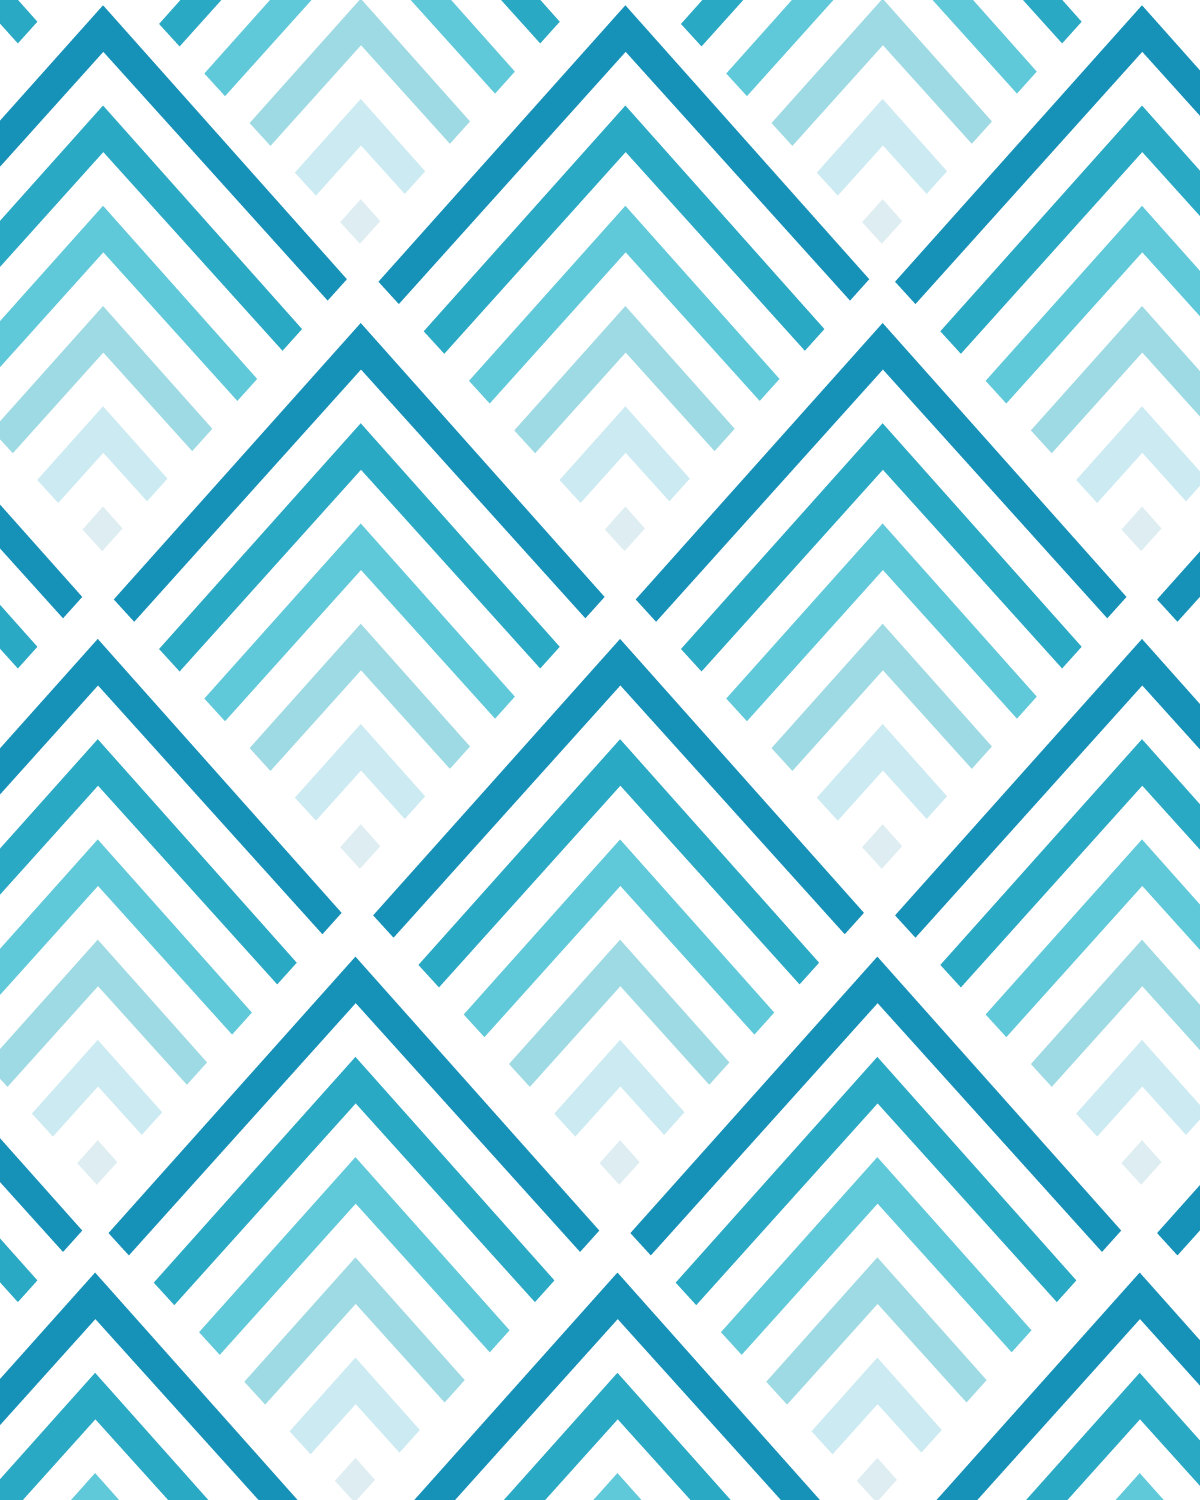 Teal and coral wallpapers wallpapersafari for Teal chevron wallpaper